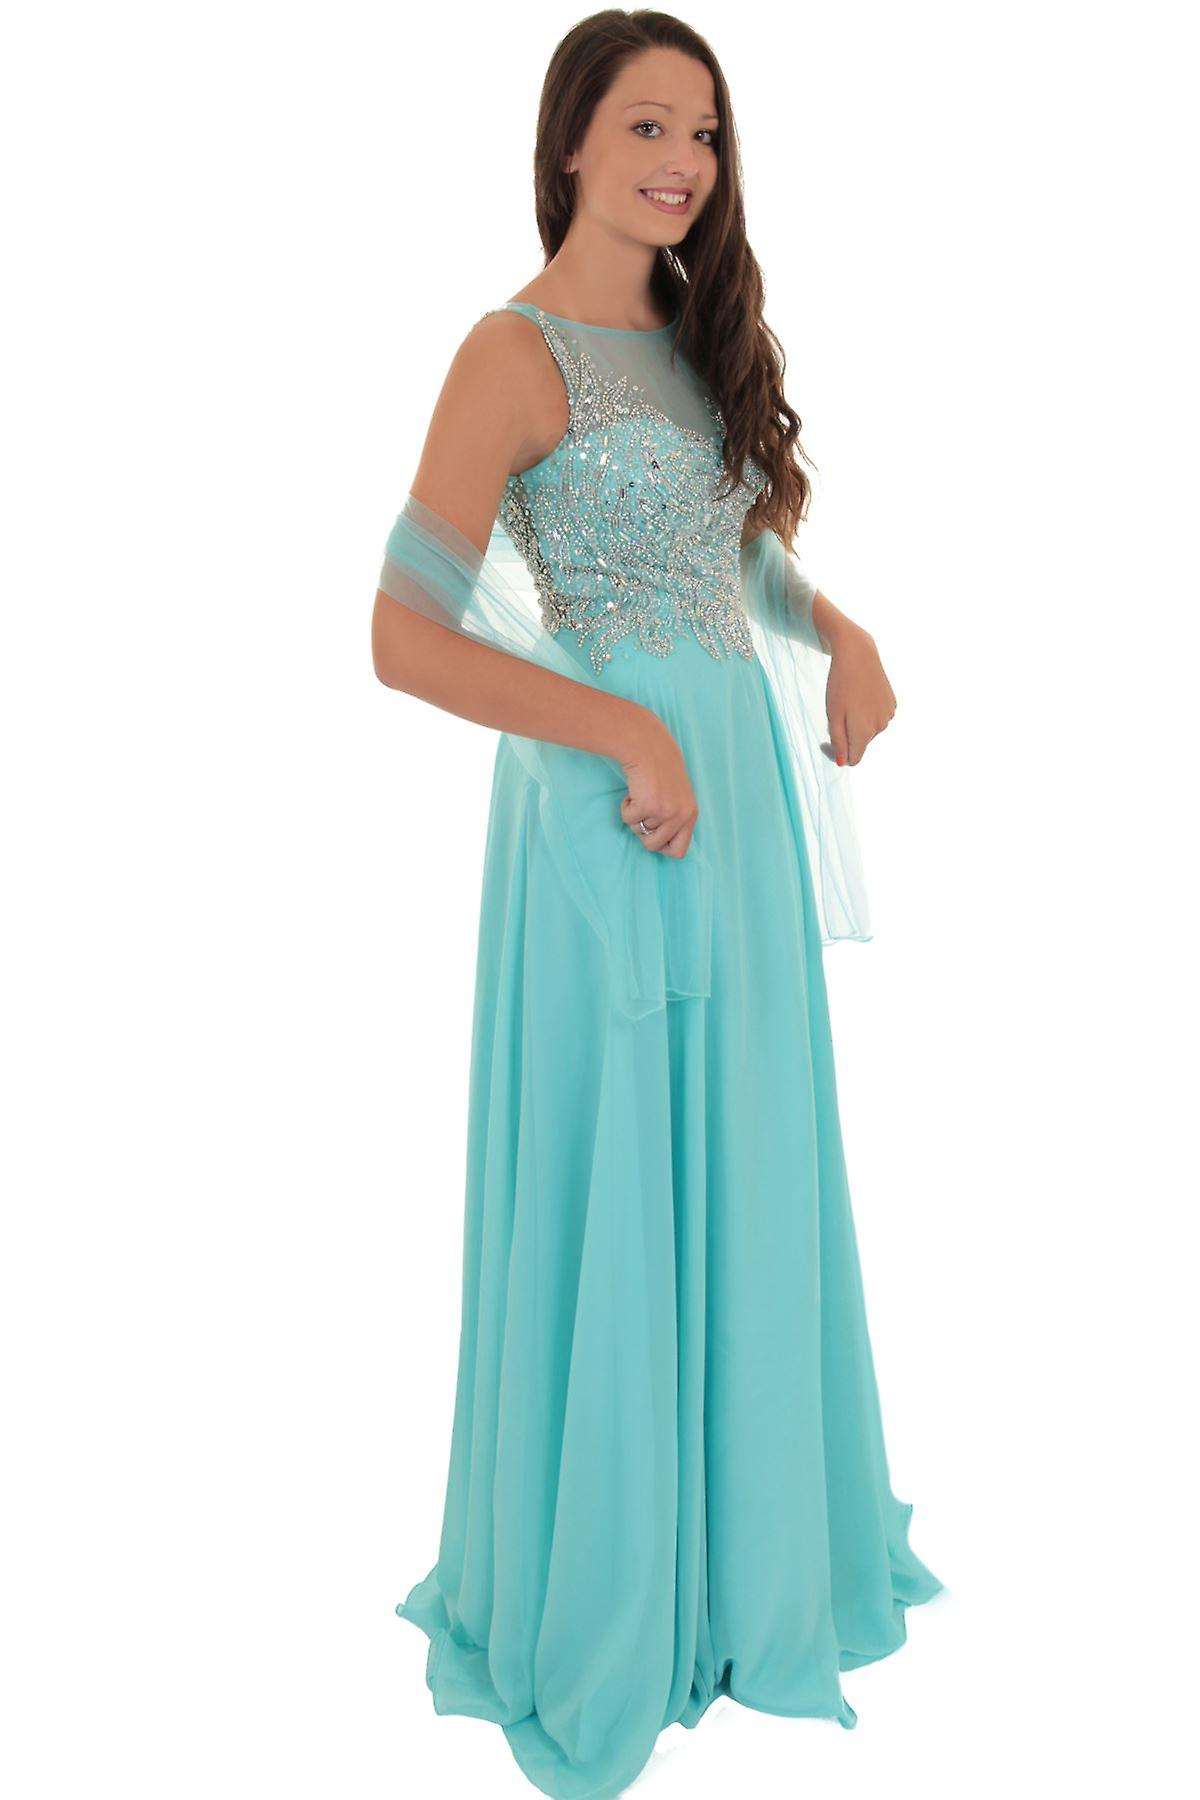 Sleeveless Long Low Back Mesh Chiffon Prom Evening Bridesmaid Party Dress